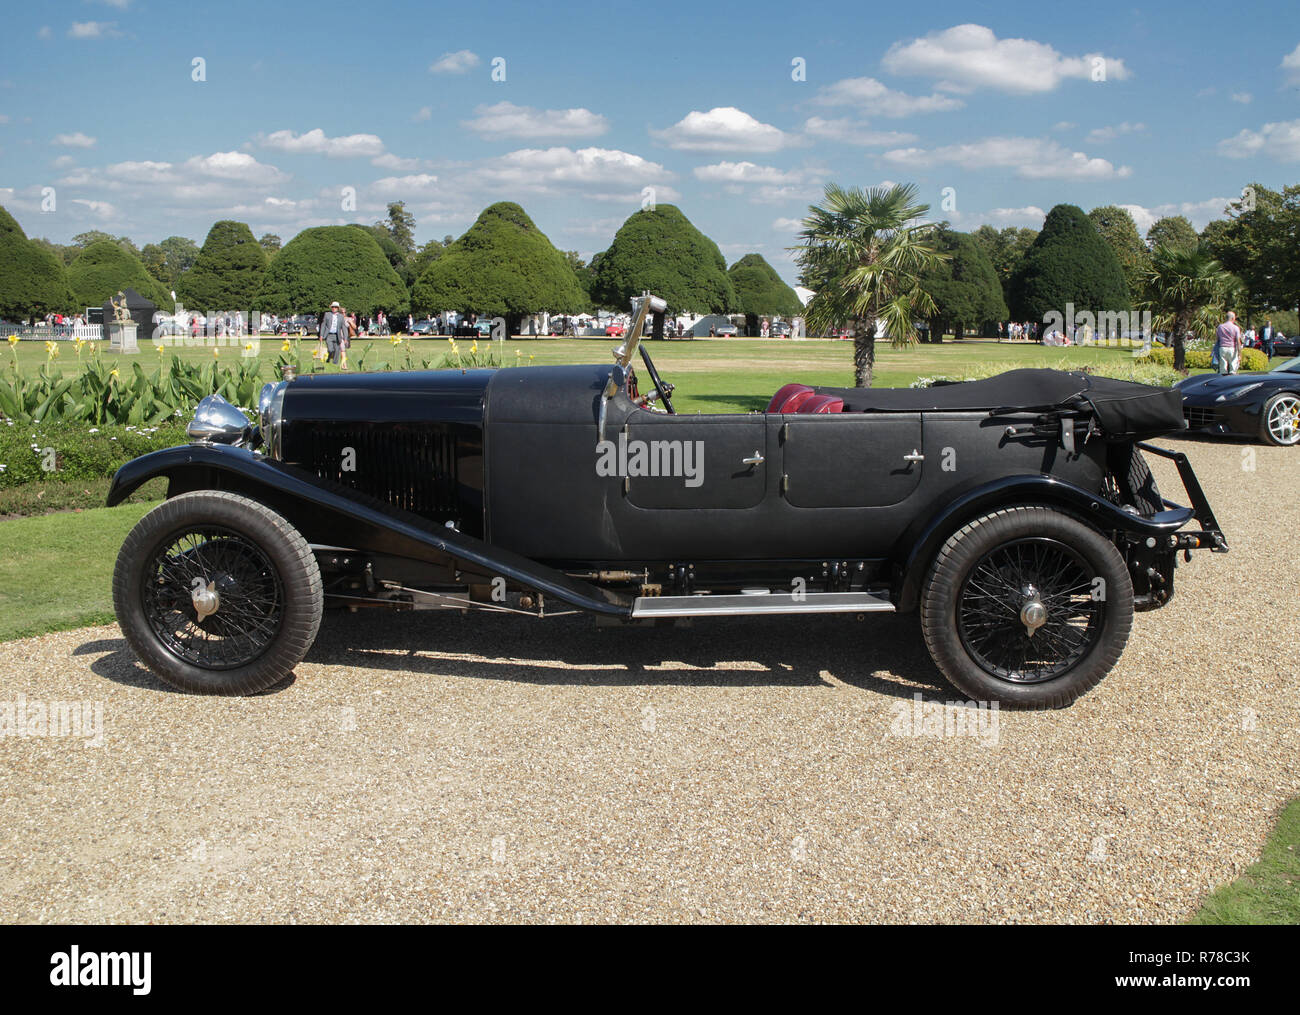 Lagonda 2 Litre Low Chassis  reg.no. PK 2011 amongst other cars on display at theConcours of Elegance 2018 , Hampton Court Palace, East Molesey,Surrey - Stock Image